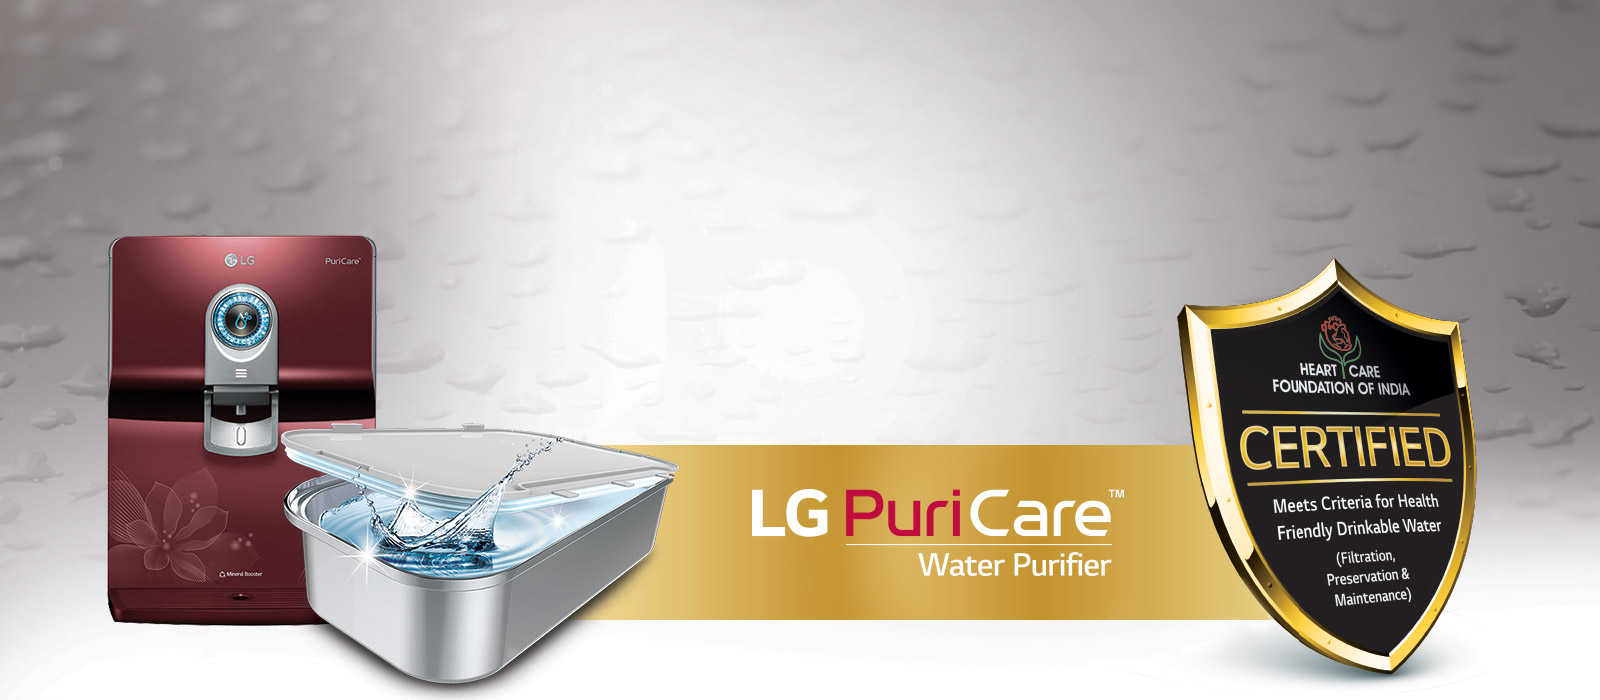 LG Puricare Water Purifier